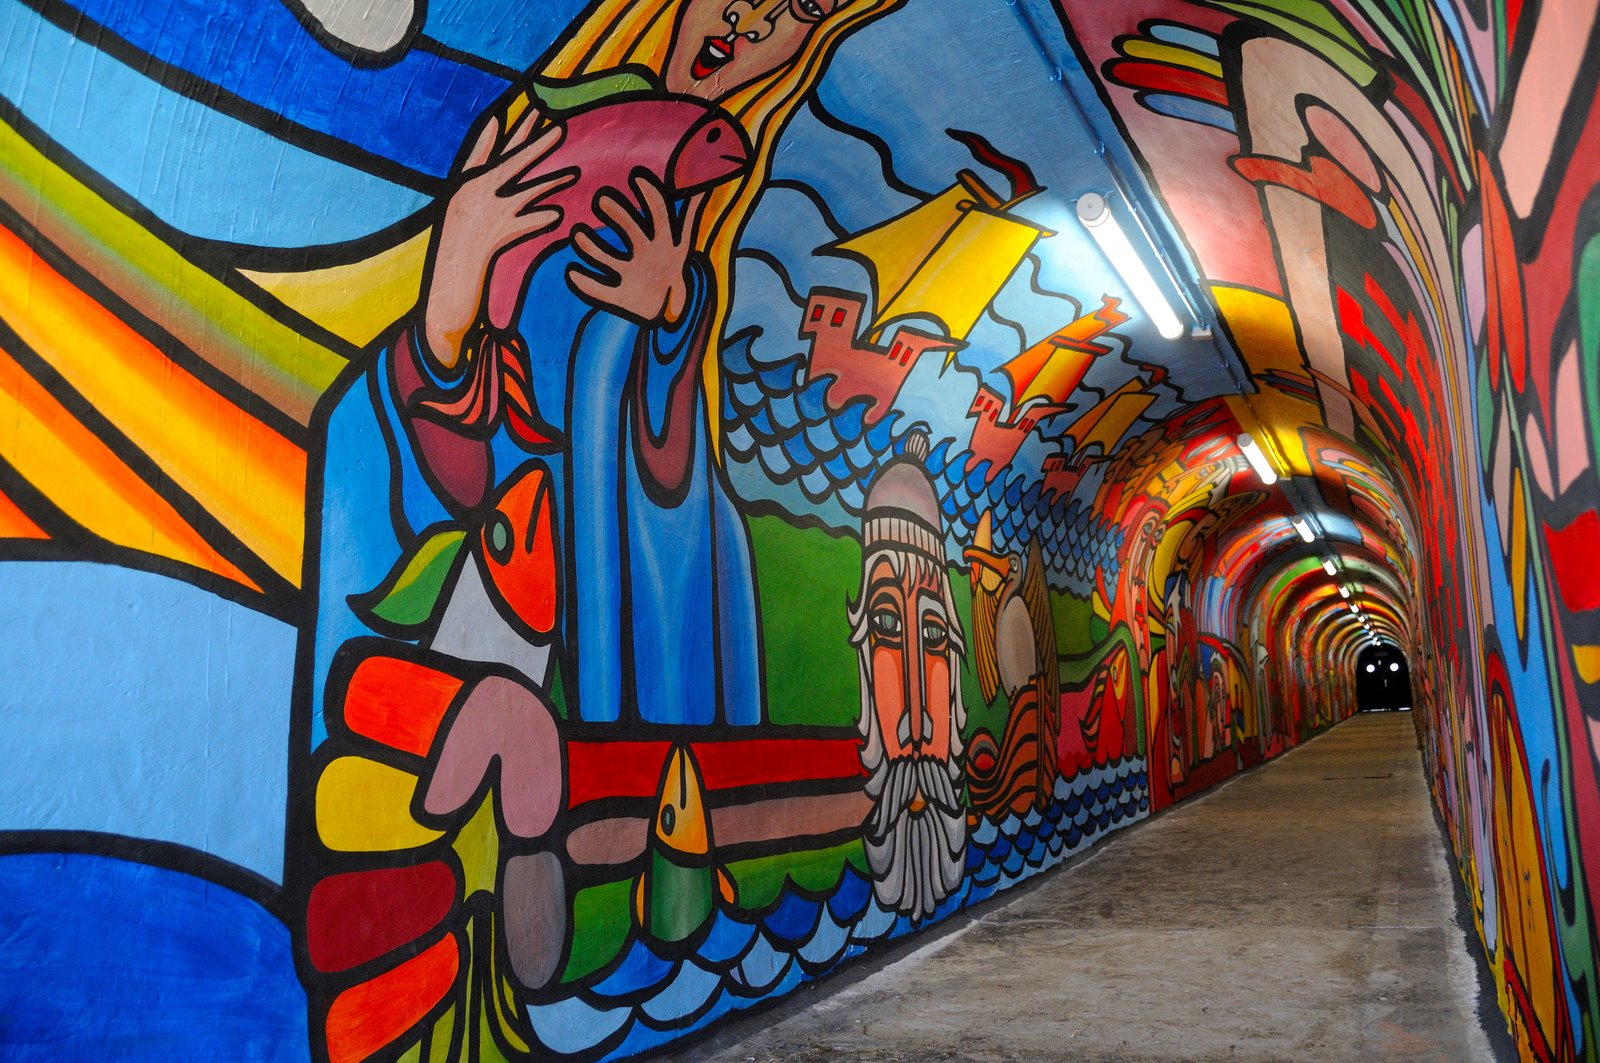 1000 images about murales chilenos on pinterest for Carpenter papel mural santiago chile